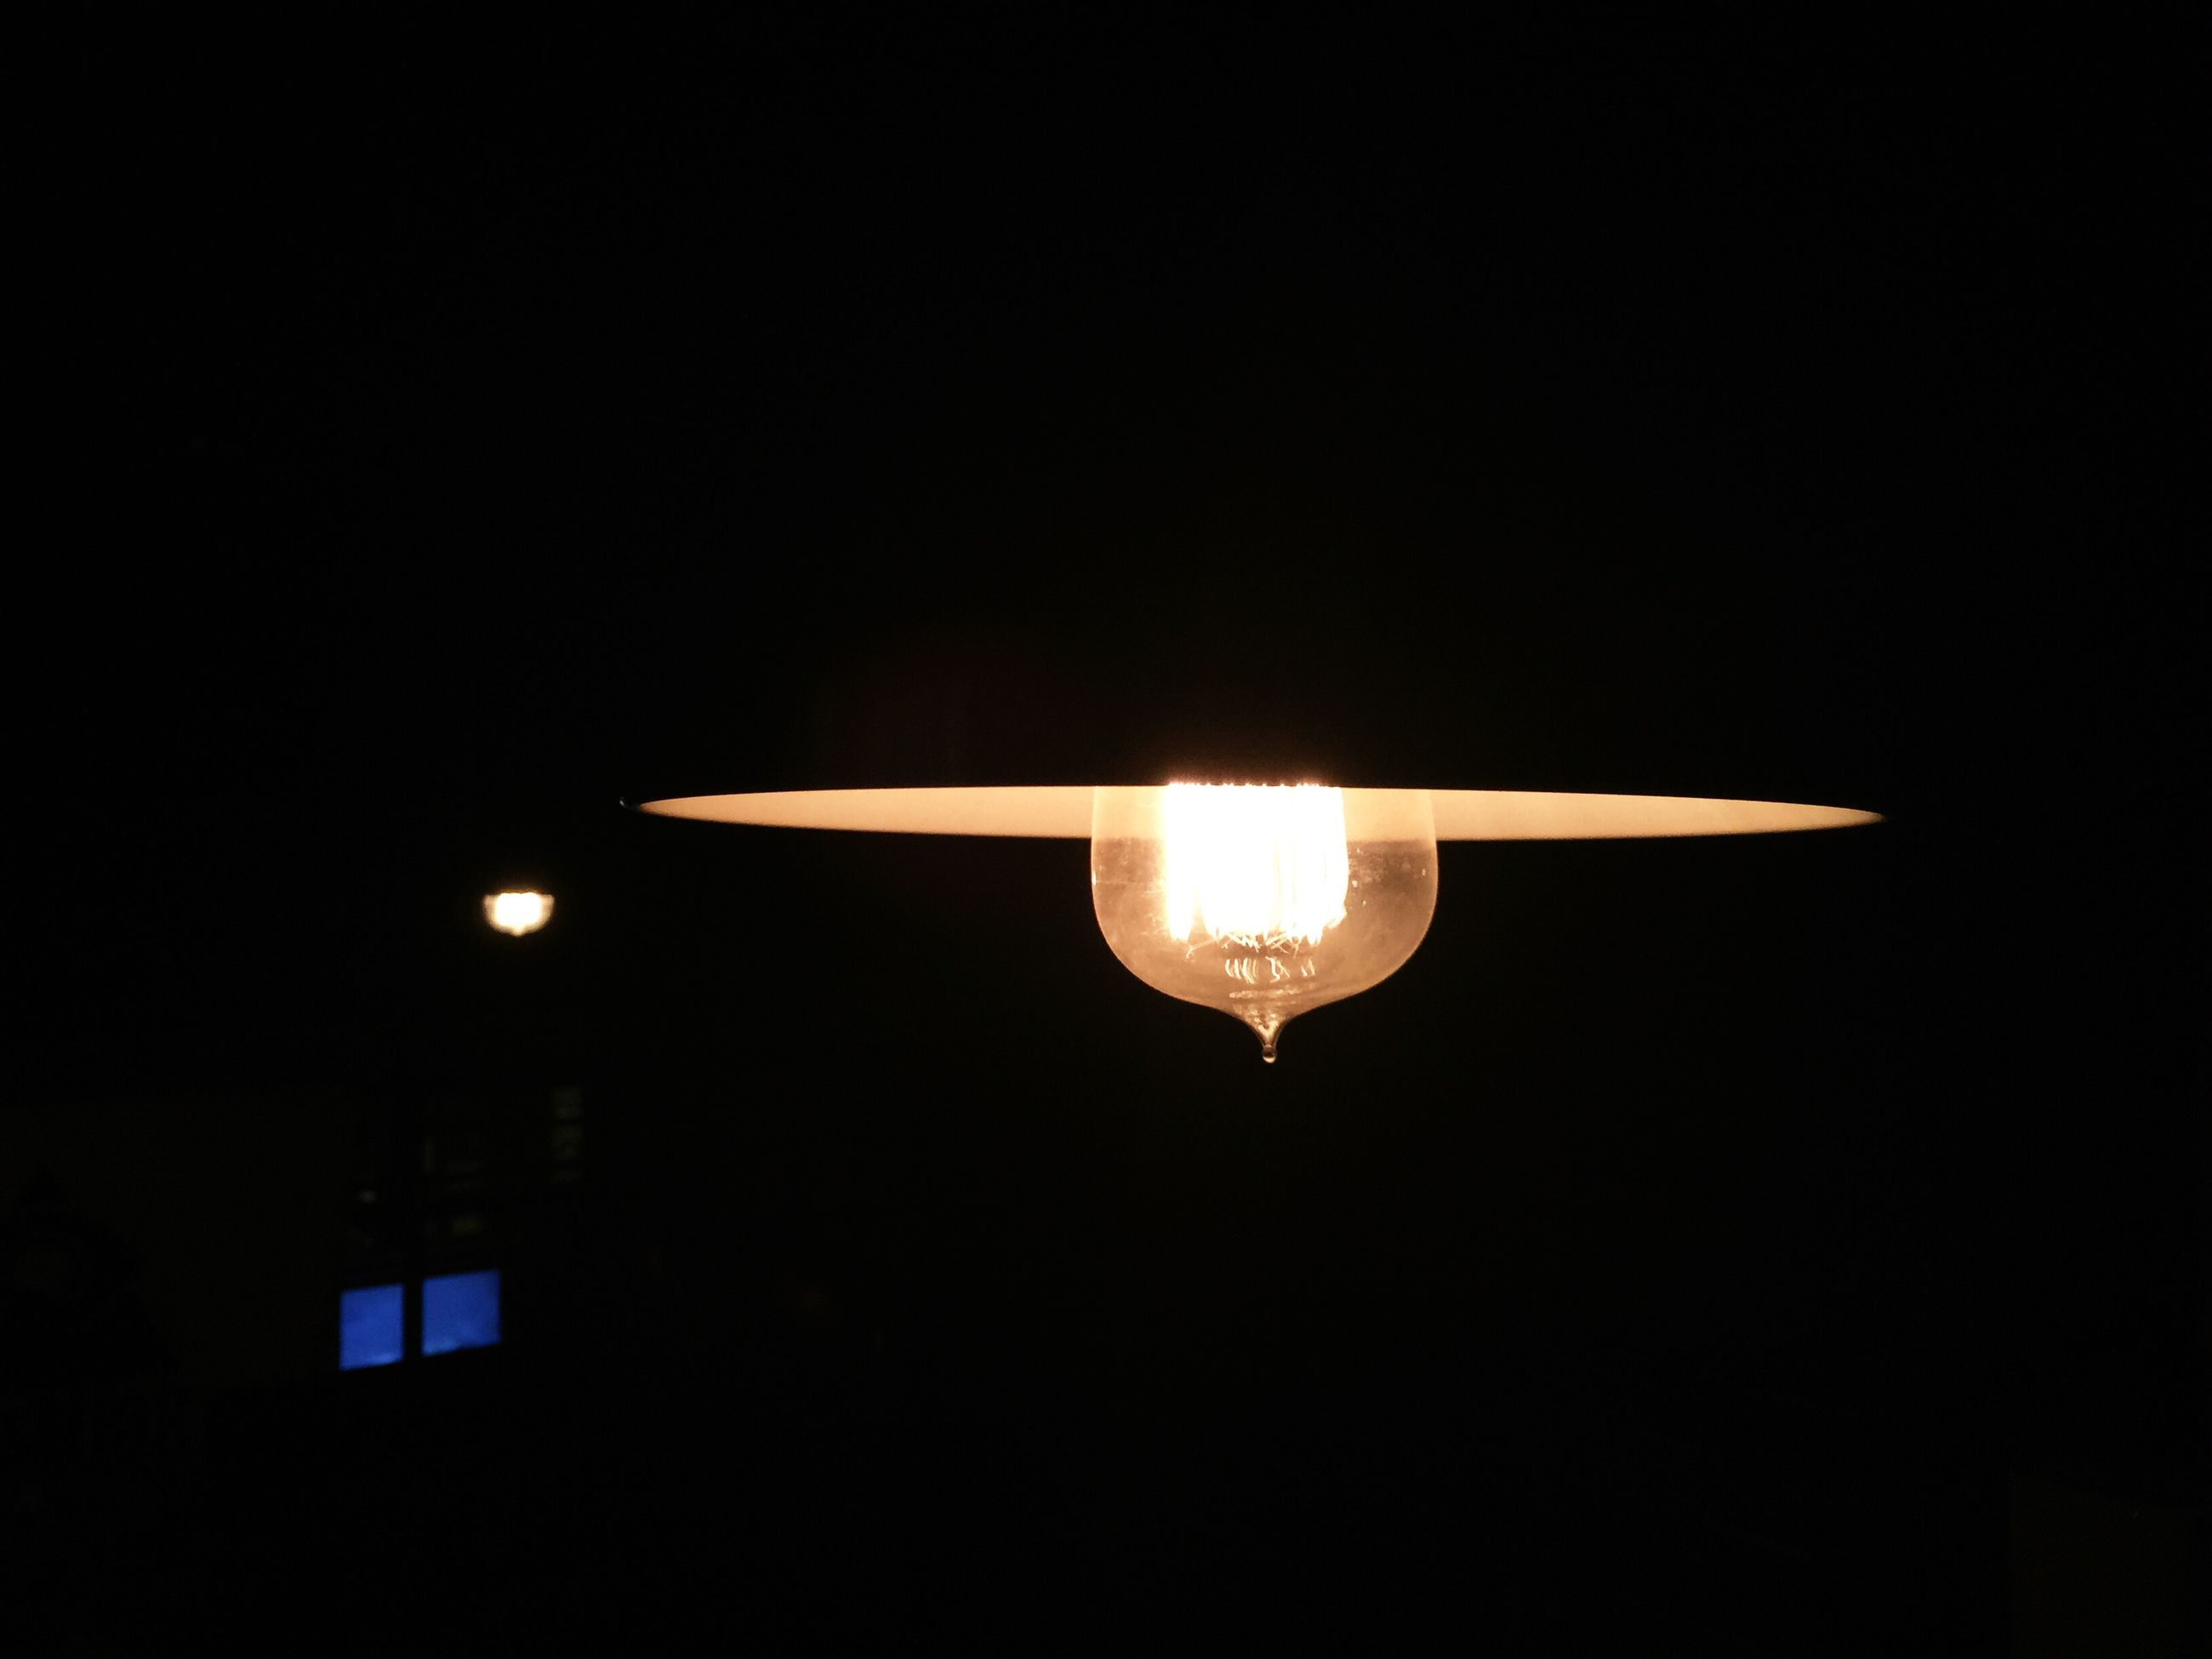 illuminated, low angle view, lighting equipment, night, copy space, glowing, dark, electricity, light bulb, electric lamp, lit, electric light, lamp, ceiling, clear sky, airplane, indoors, light - natural phenomenon, moon, air vehicle